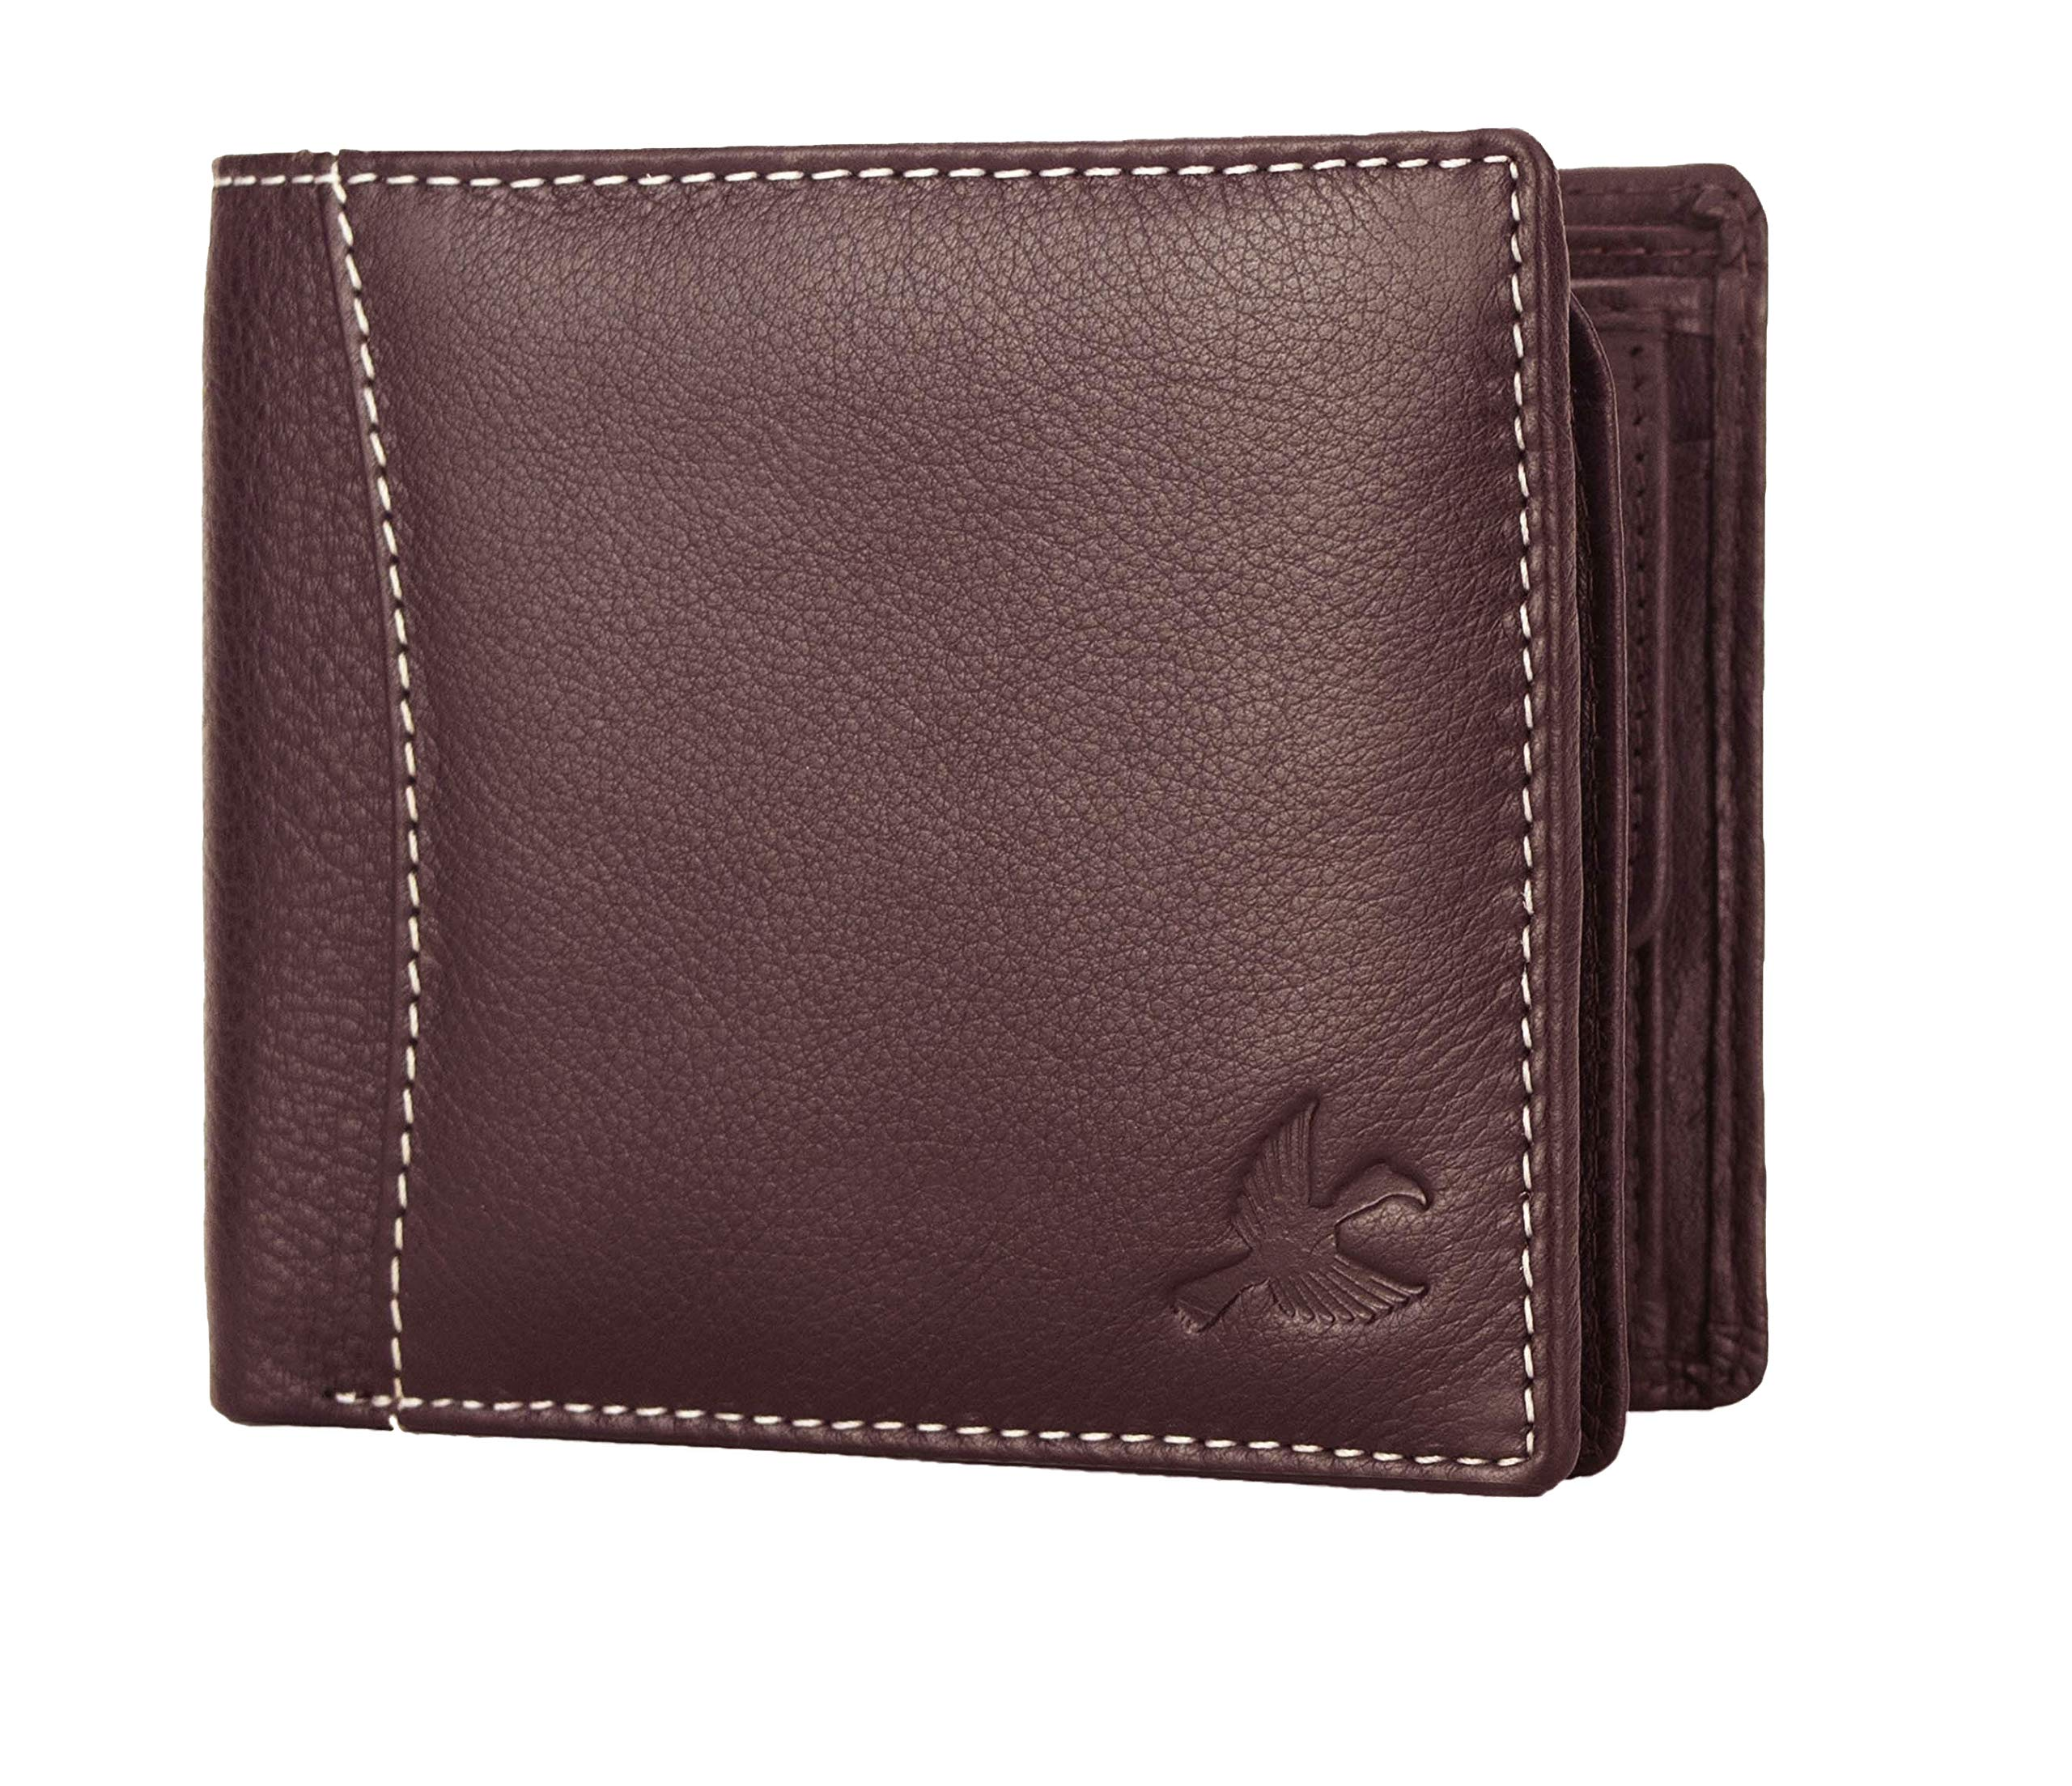 HORNBULL Brown Men's Wallet product image